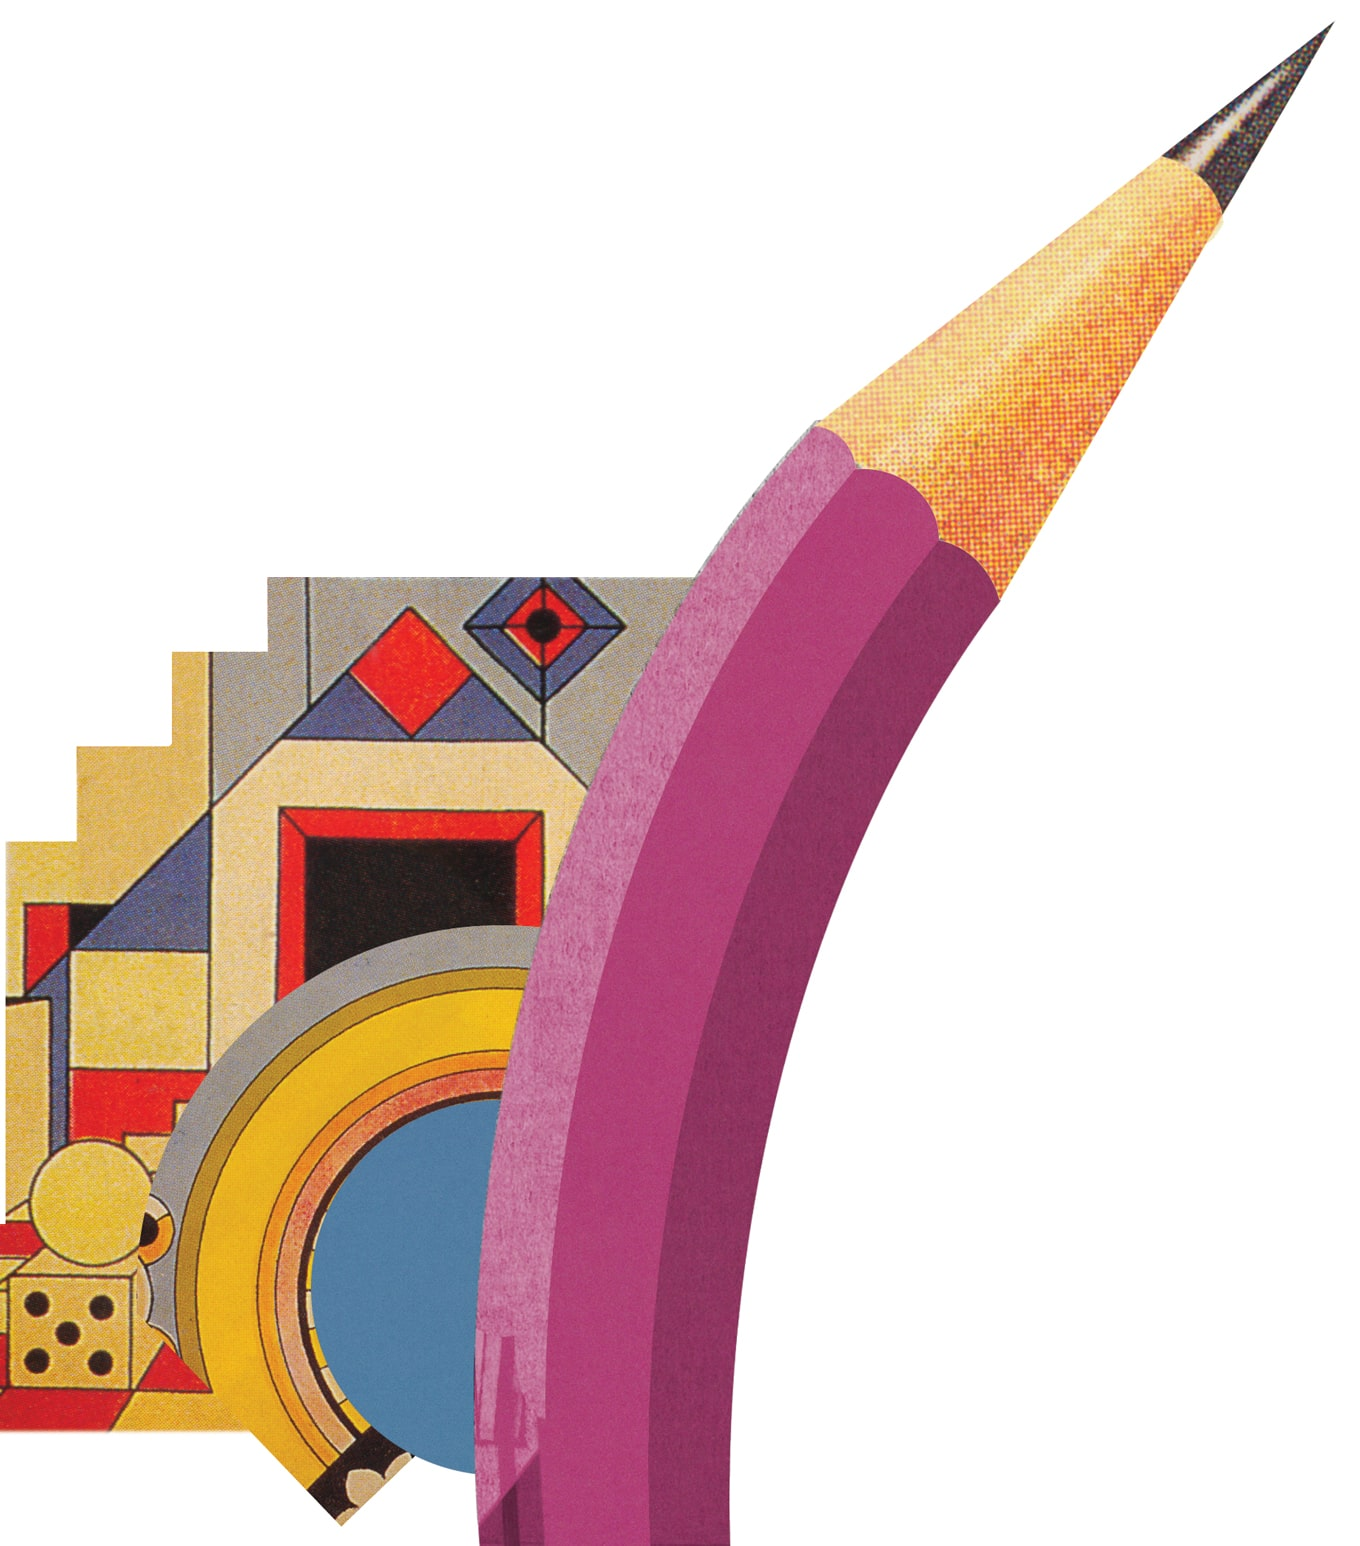 illustration of a purple curved pencil